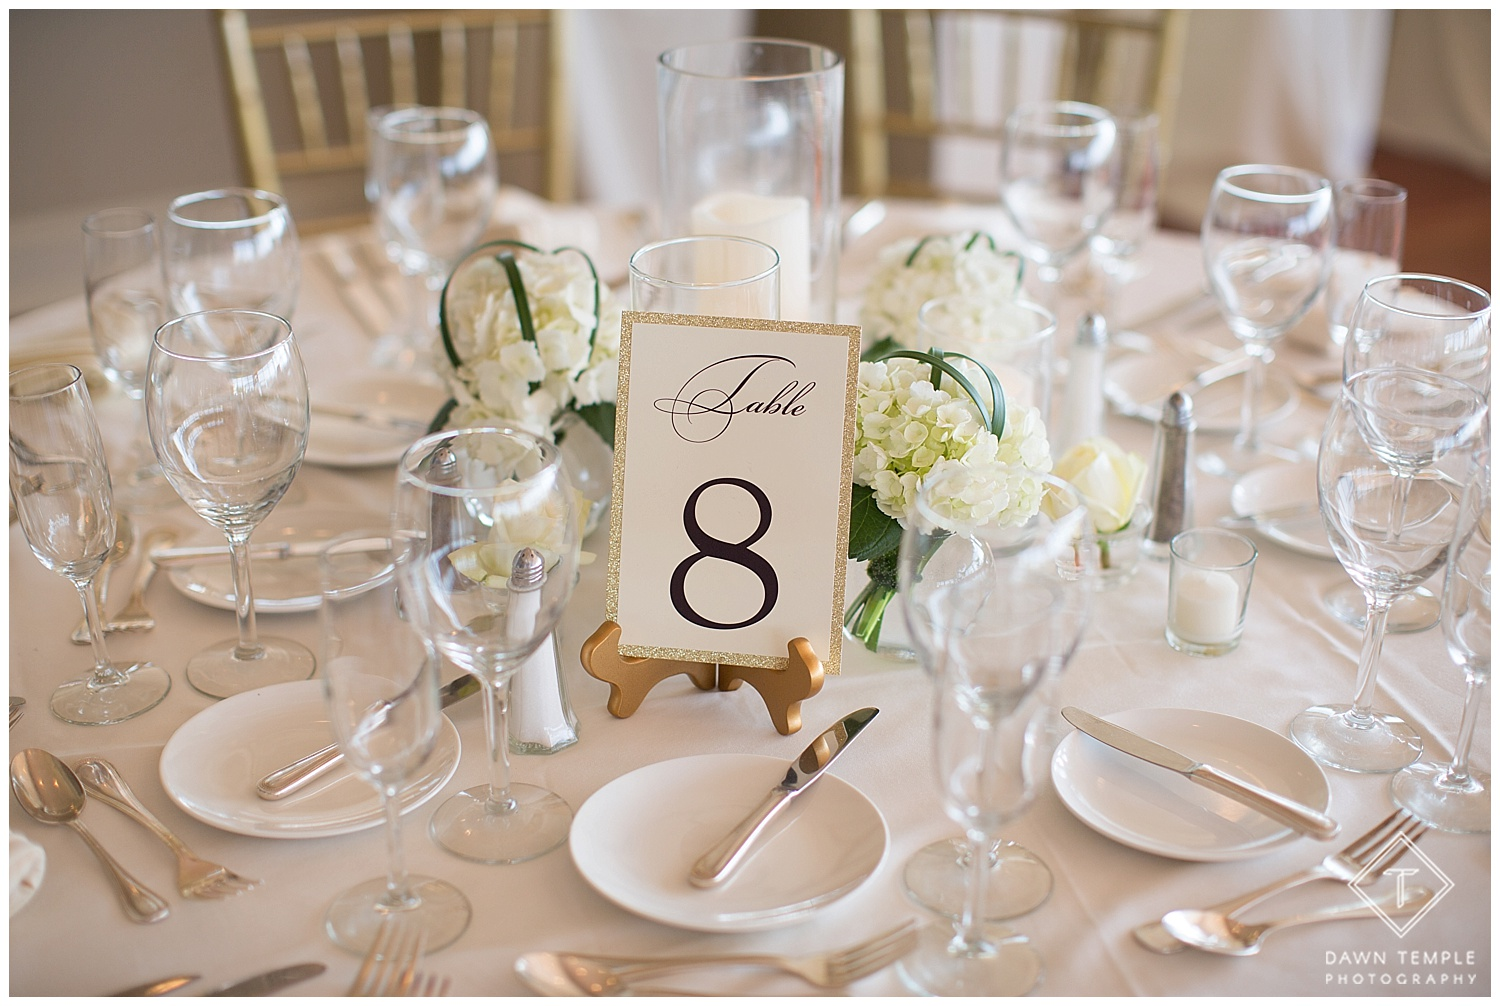 Black Tie Wedding at Oceancliff - Dawn Temple Photography